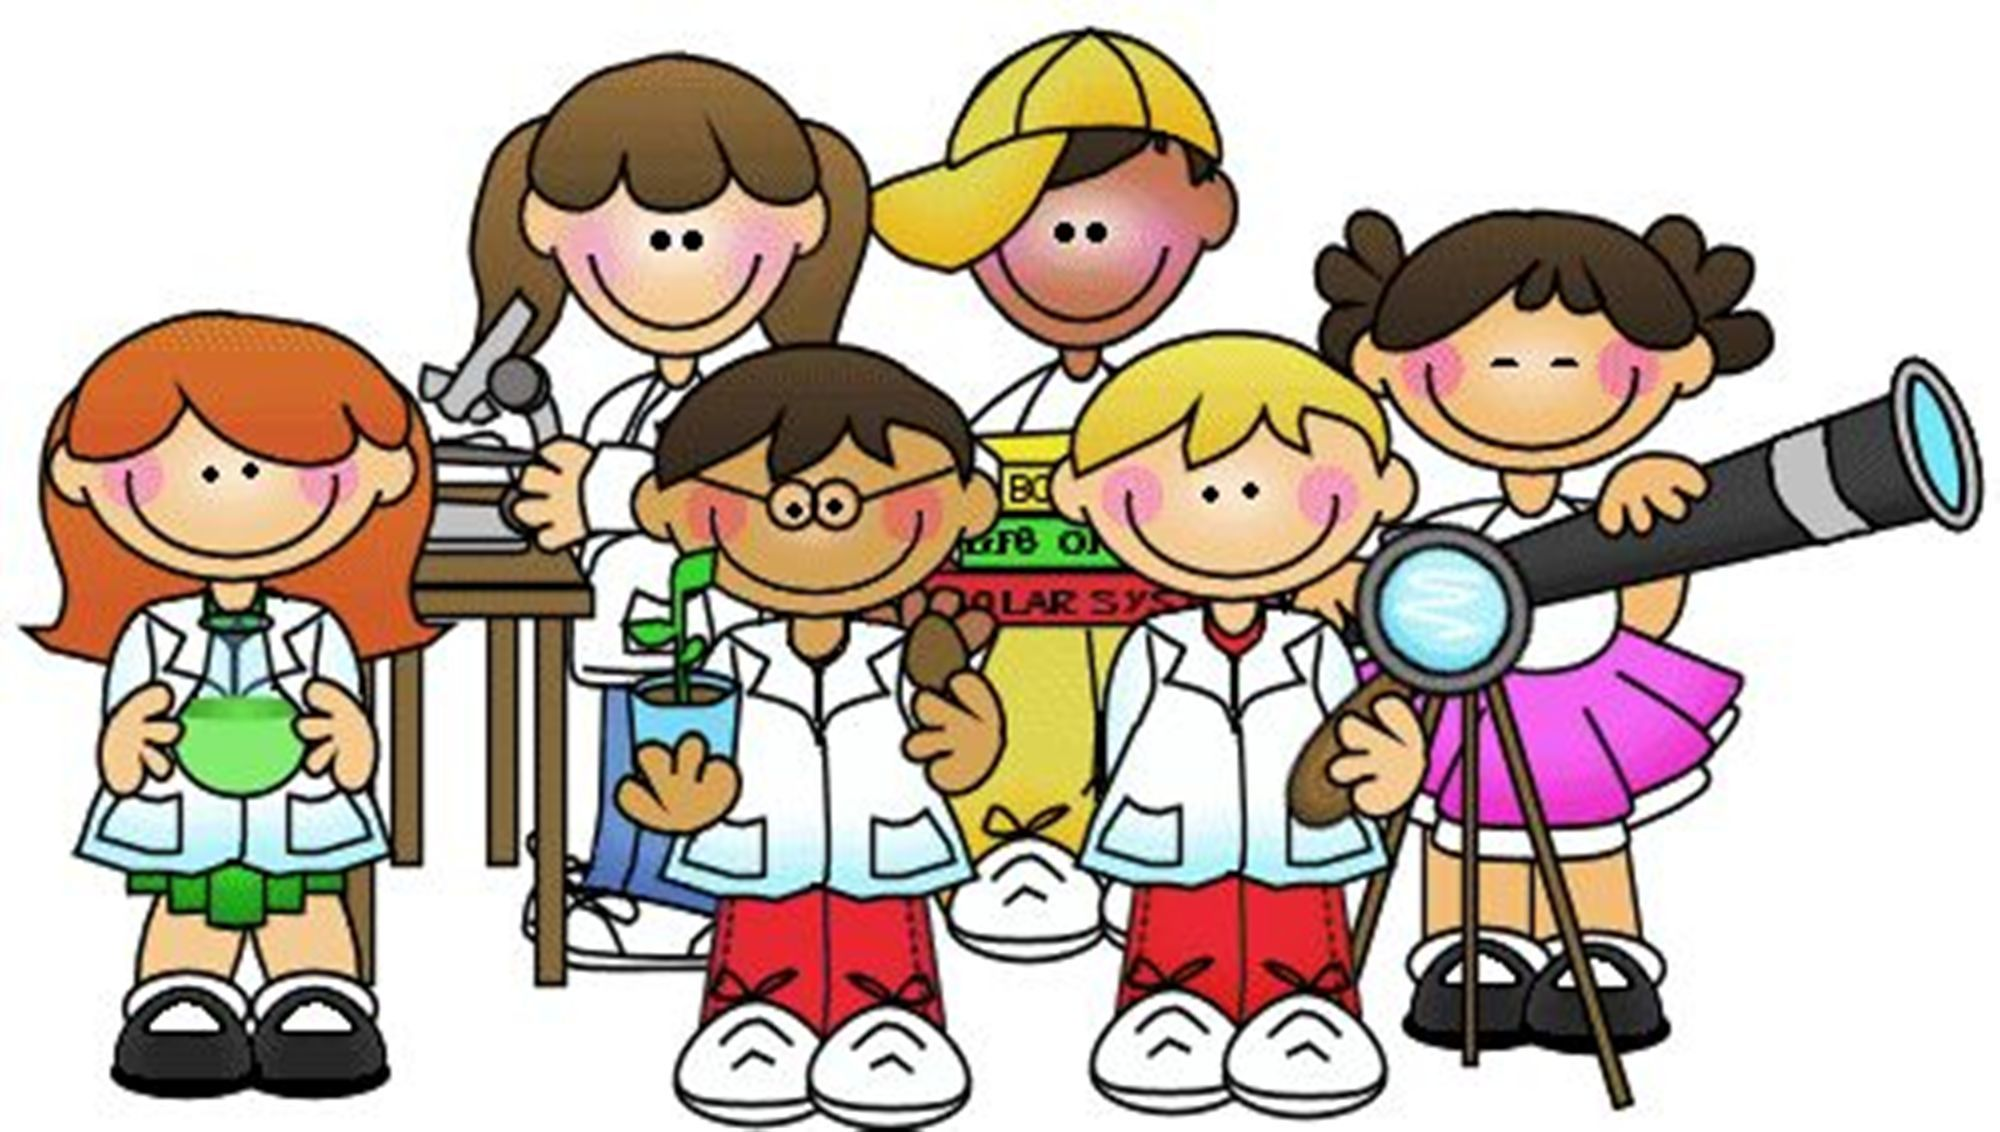 science and social studies clipart 3 880803 png images pngio science and social studies clipart 3